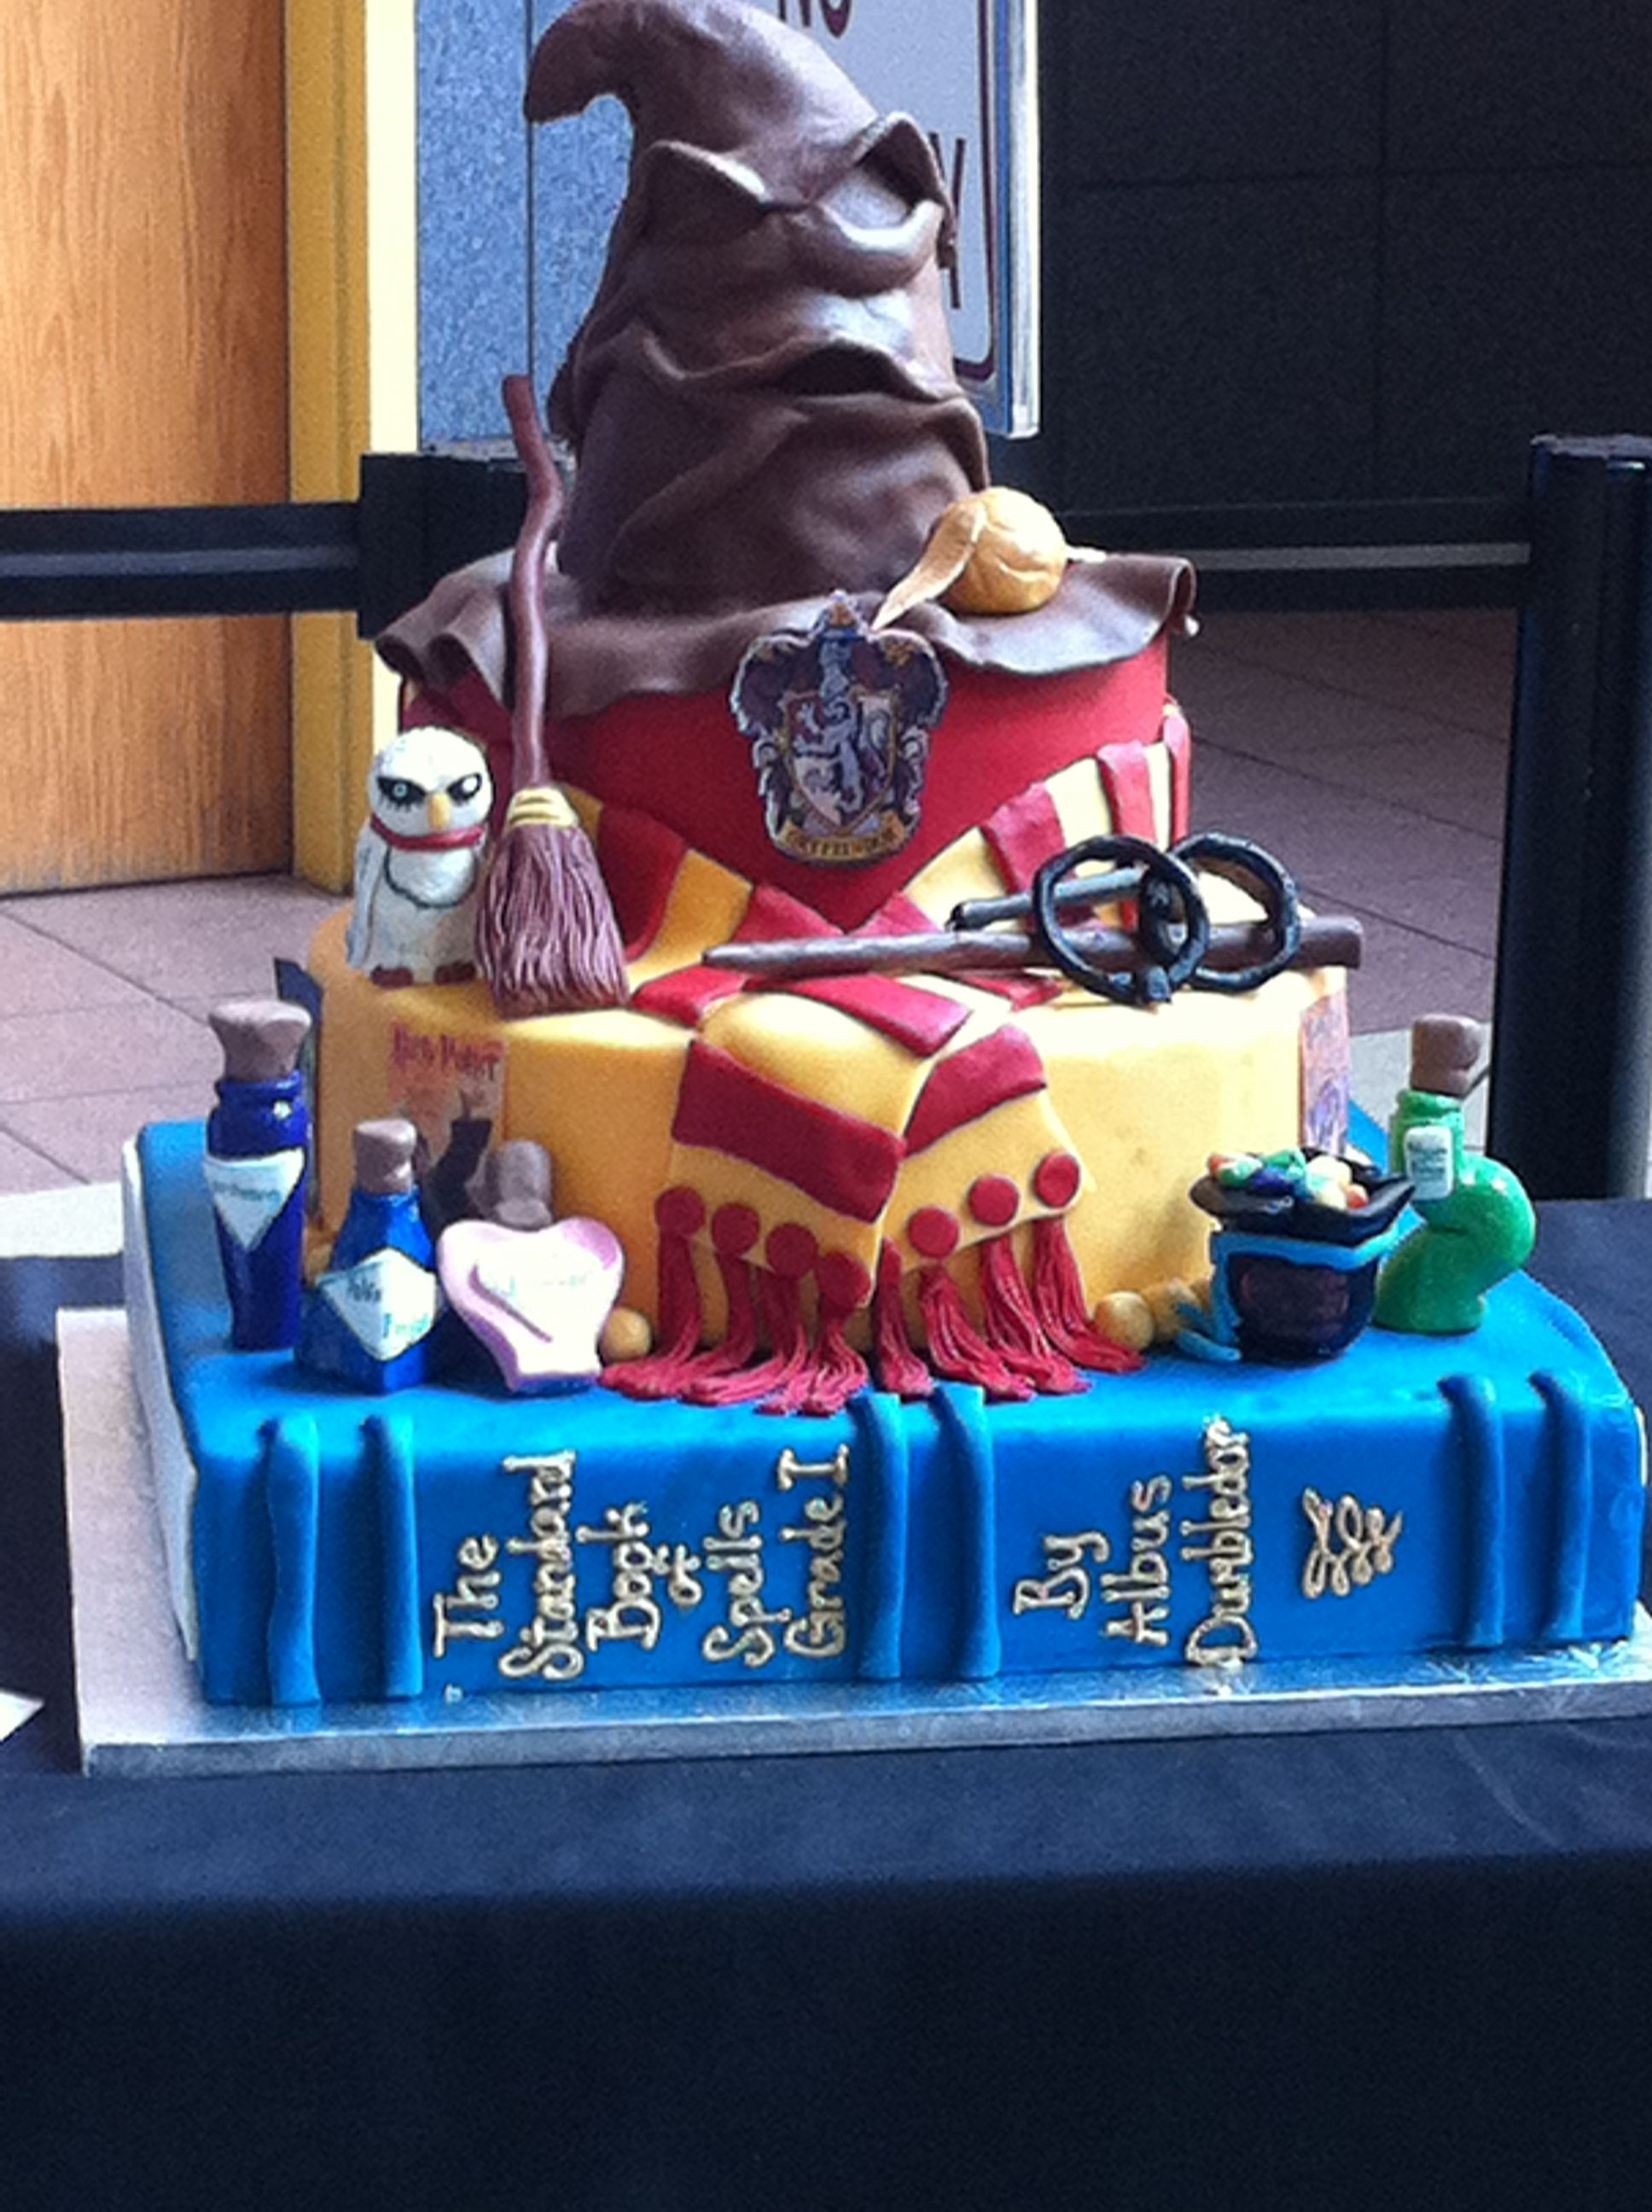 Okay I Need To Find Somene Really Talented To Make An Awesome Harry Potter Cake Stat